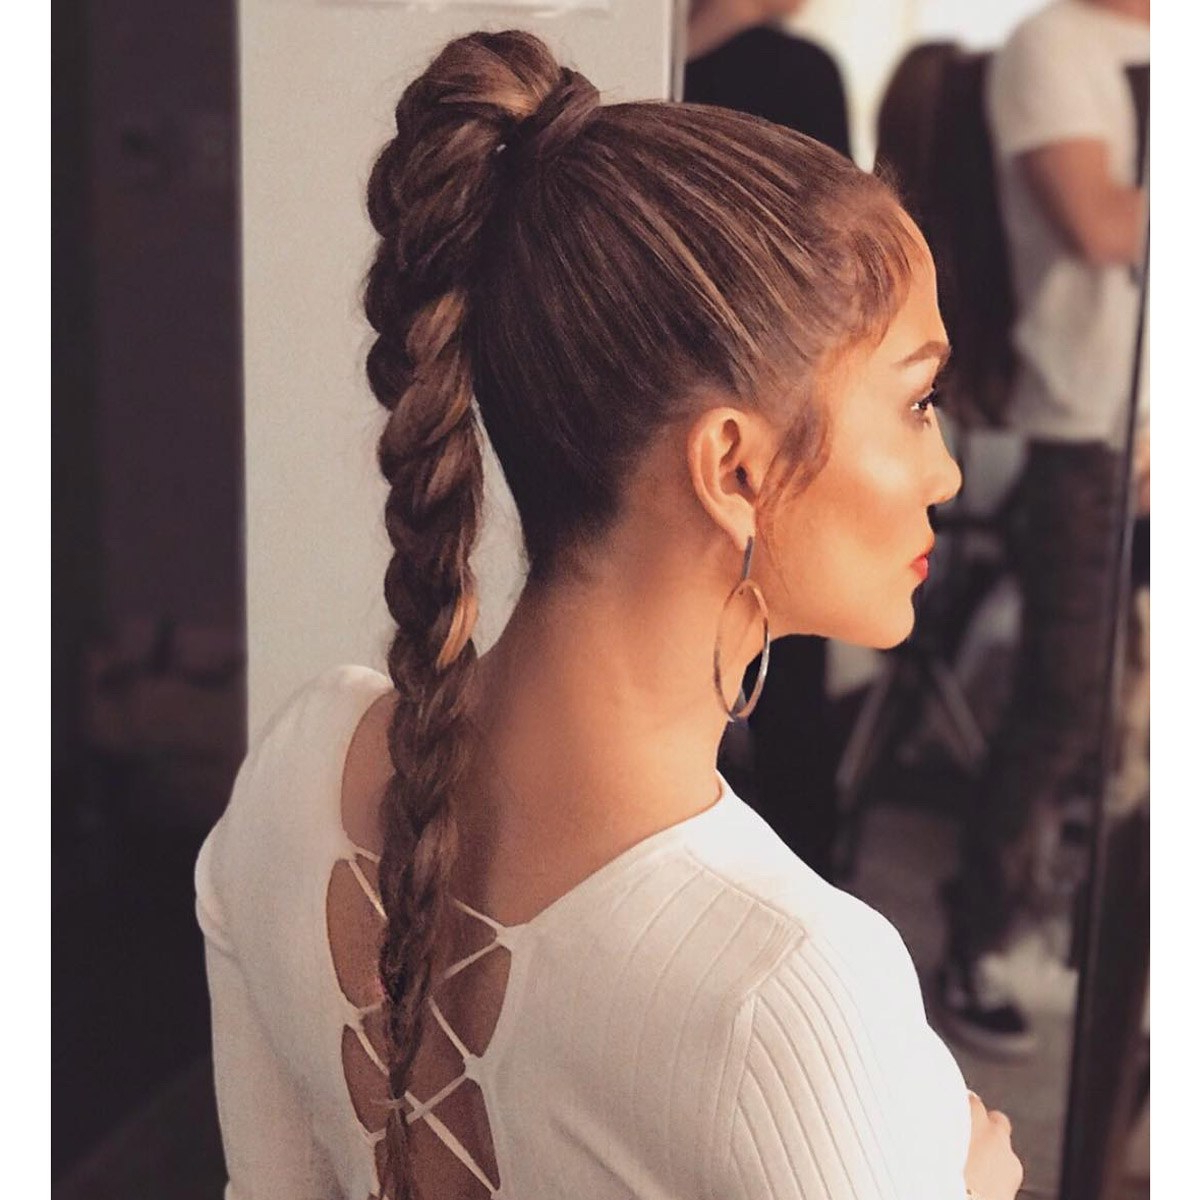 37 Cool Ponytail Hairstyles To Try In (View 4 of 20)